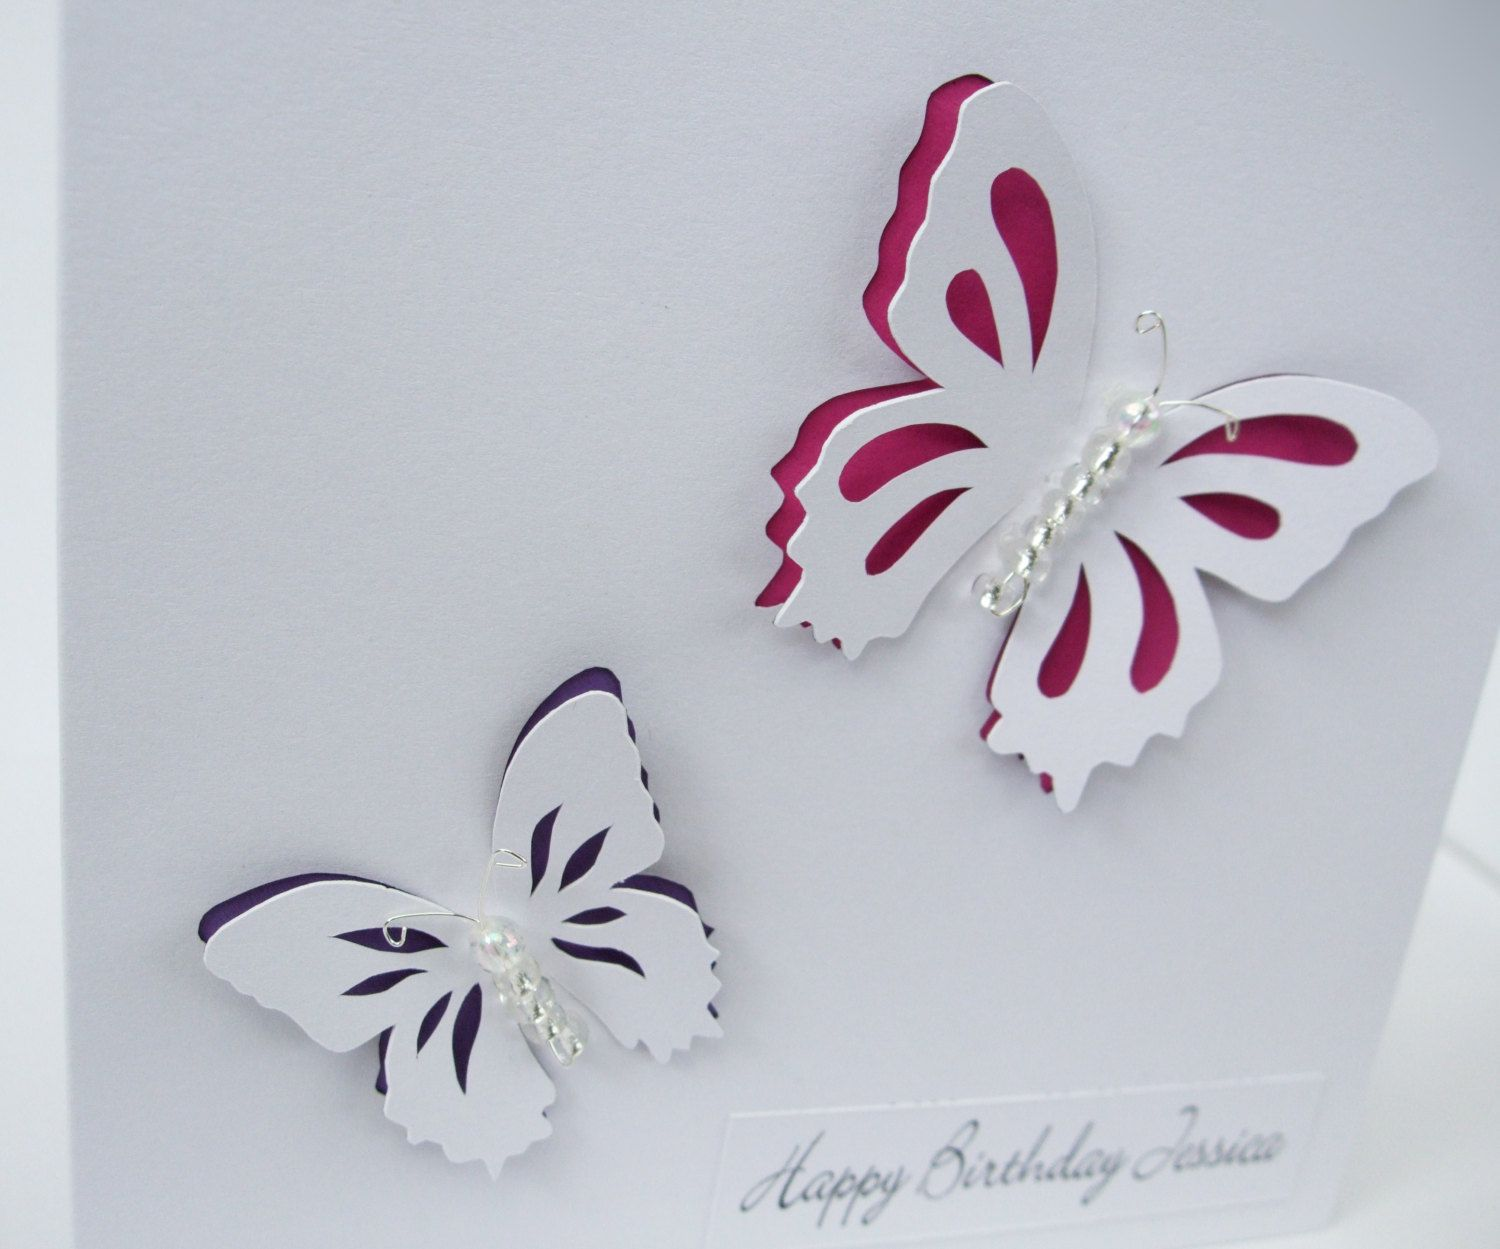 Butterfly birthday card beautiful paper cut butterflies cards butterfly birthday card beautiful paper cut butterflies butterfly birthday cardspaperbeautifulhandmade kristyandbryce Images